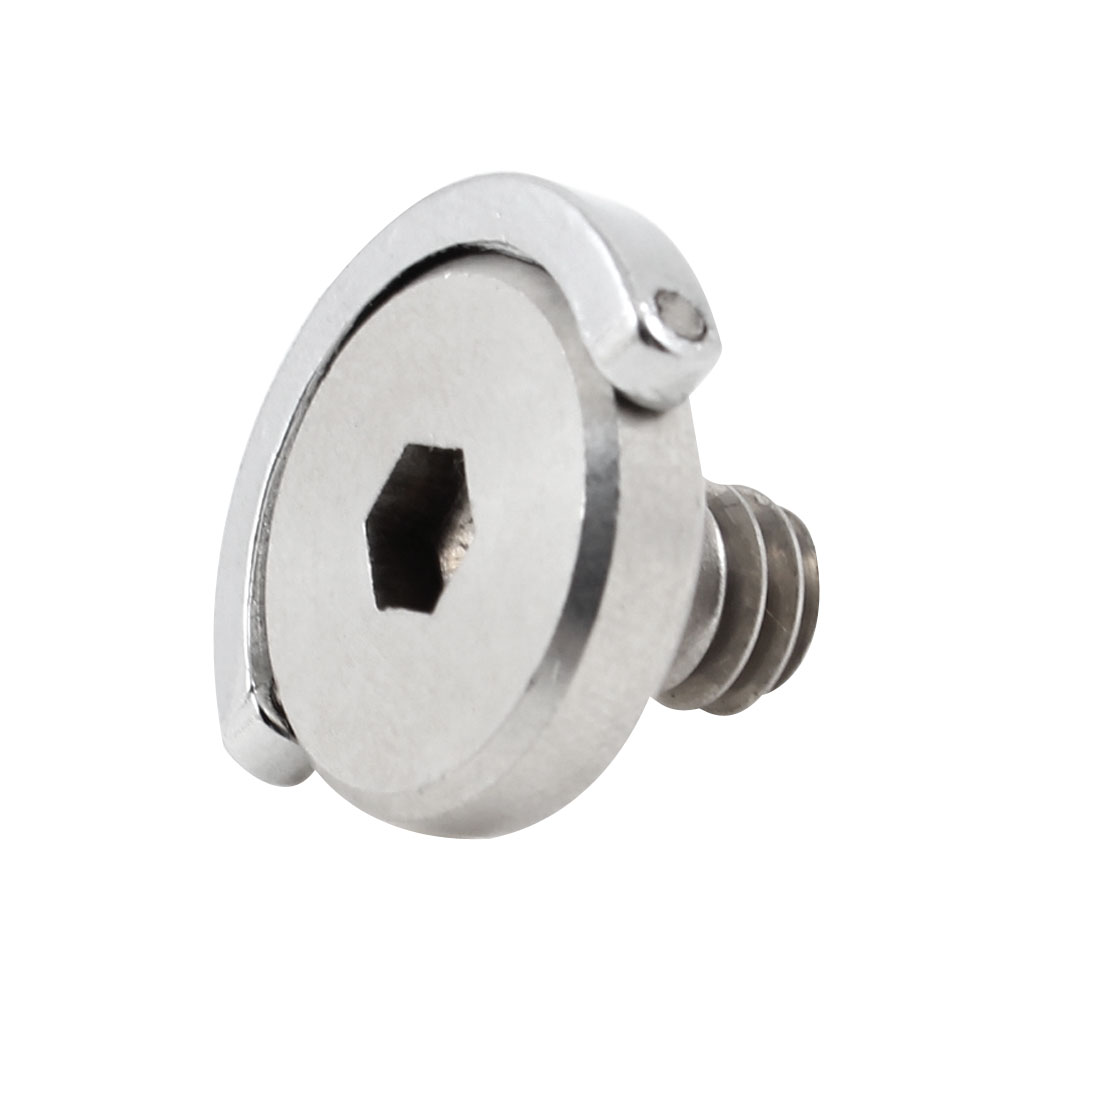 "1/4"" Silver Tone Stainless Steel D-ring Tripod QR Plate Camera Screw"